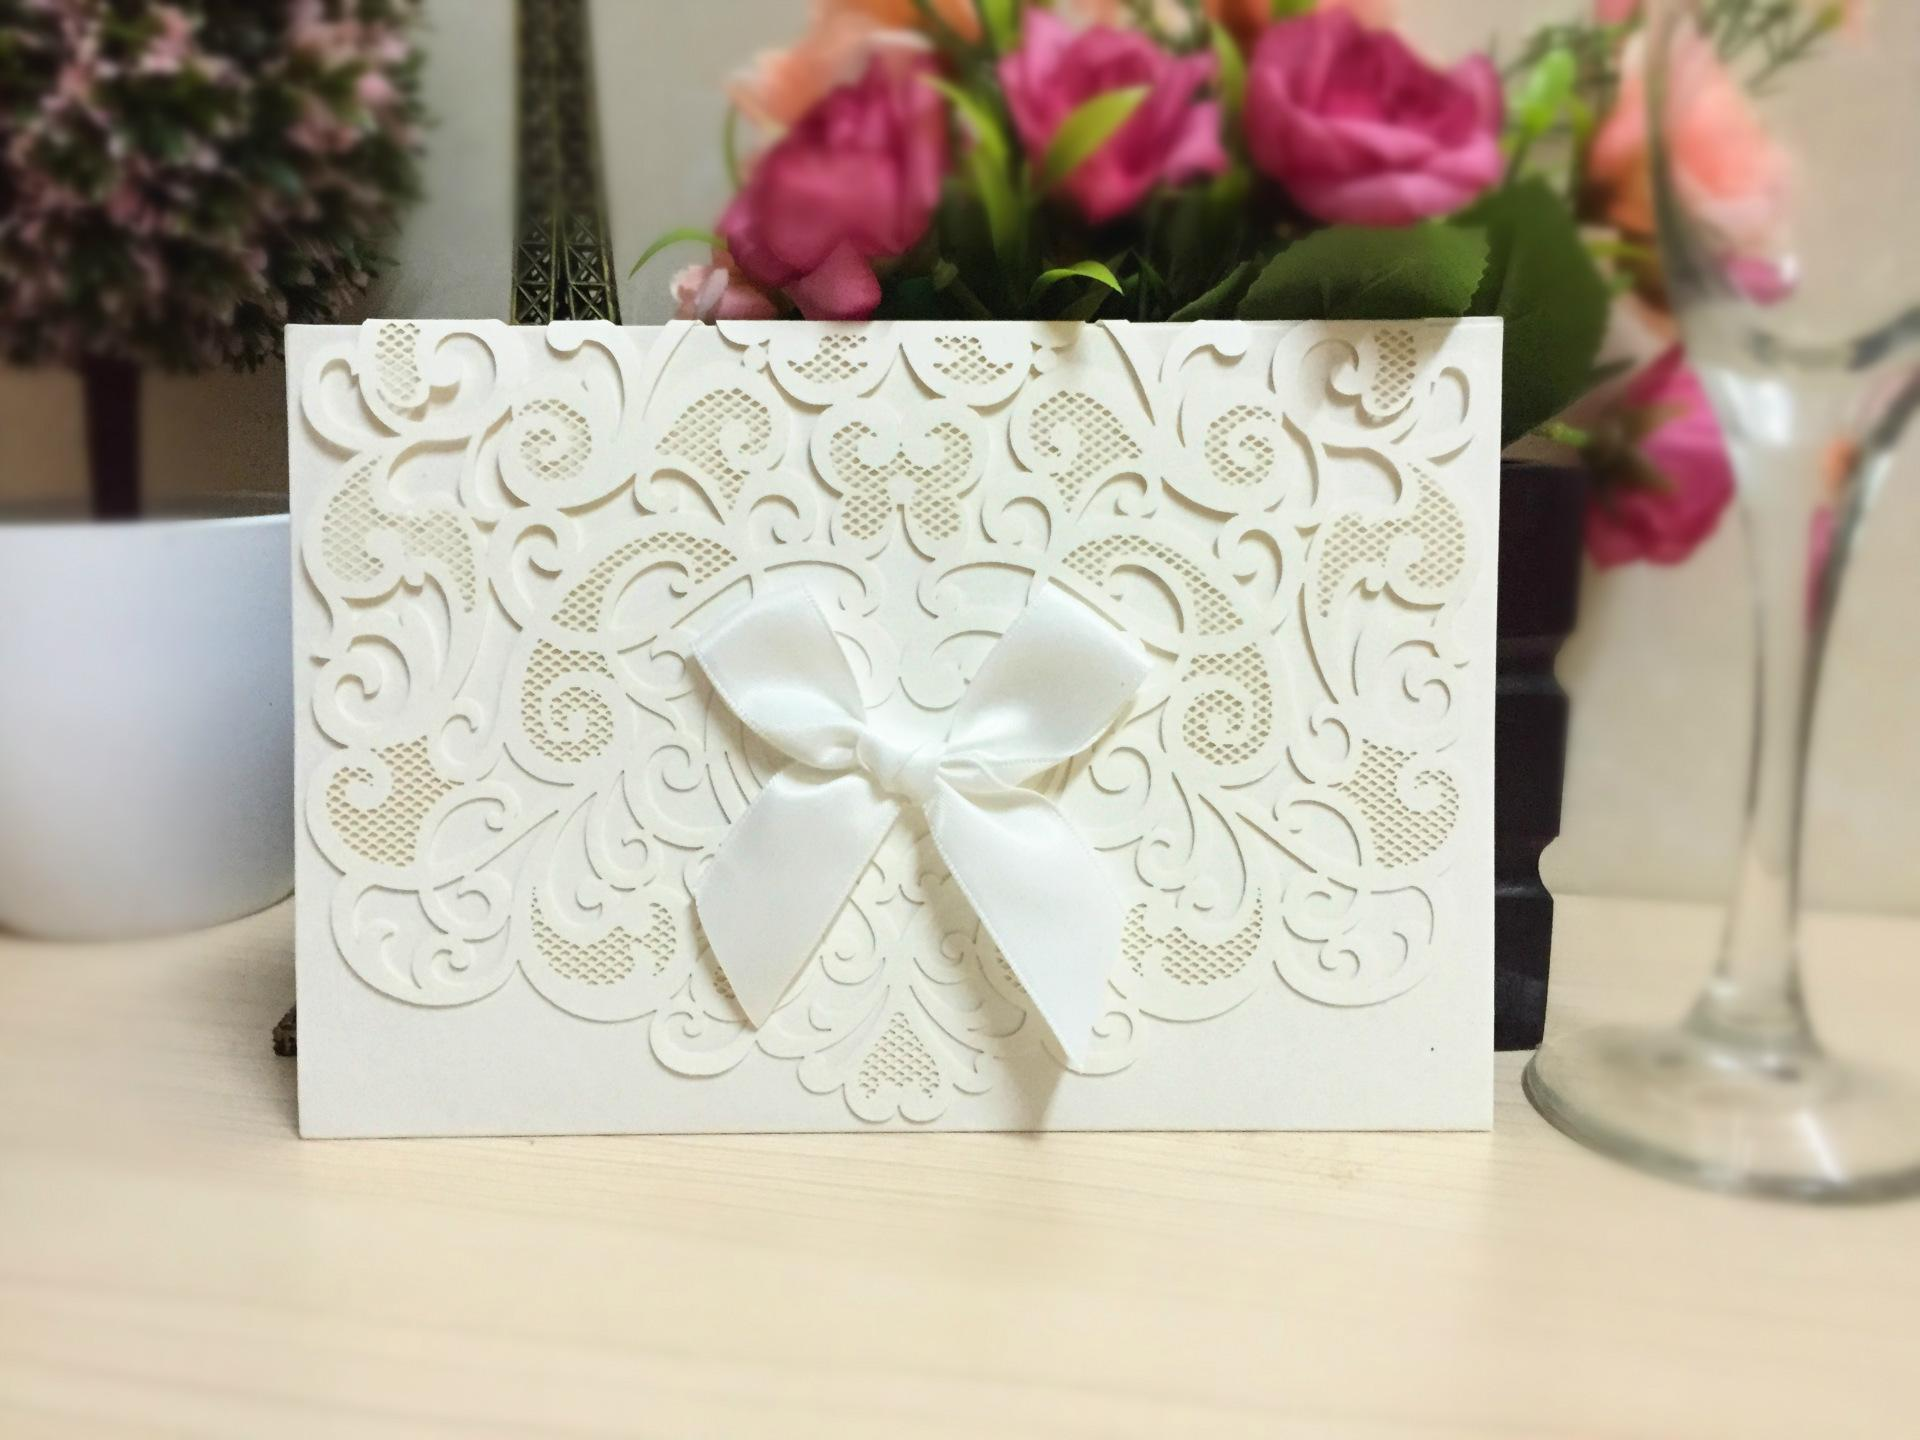 2016 Printing Laser Cutting New Wedding Favors Wholesale Hollow Wedding Party Printable Invitation Cards Ribbon Classy Wedding Invitations Customized